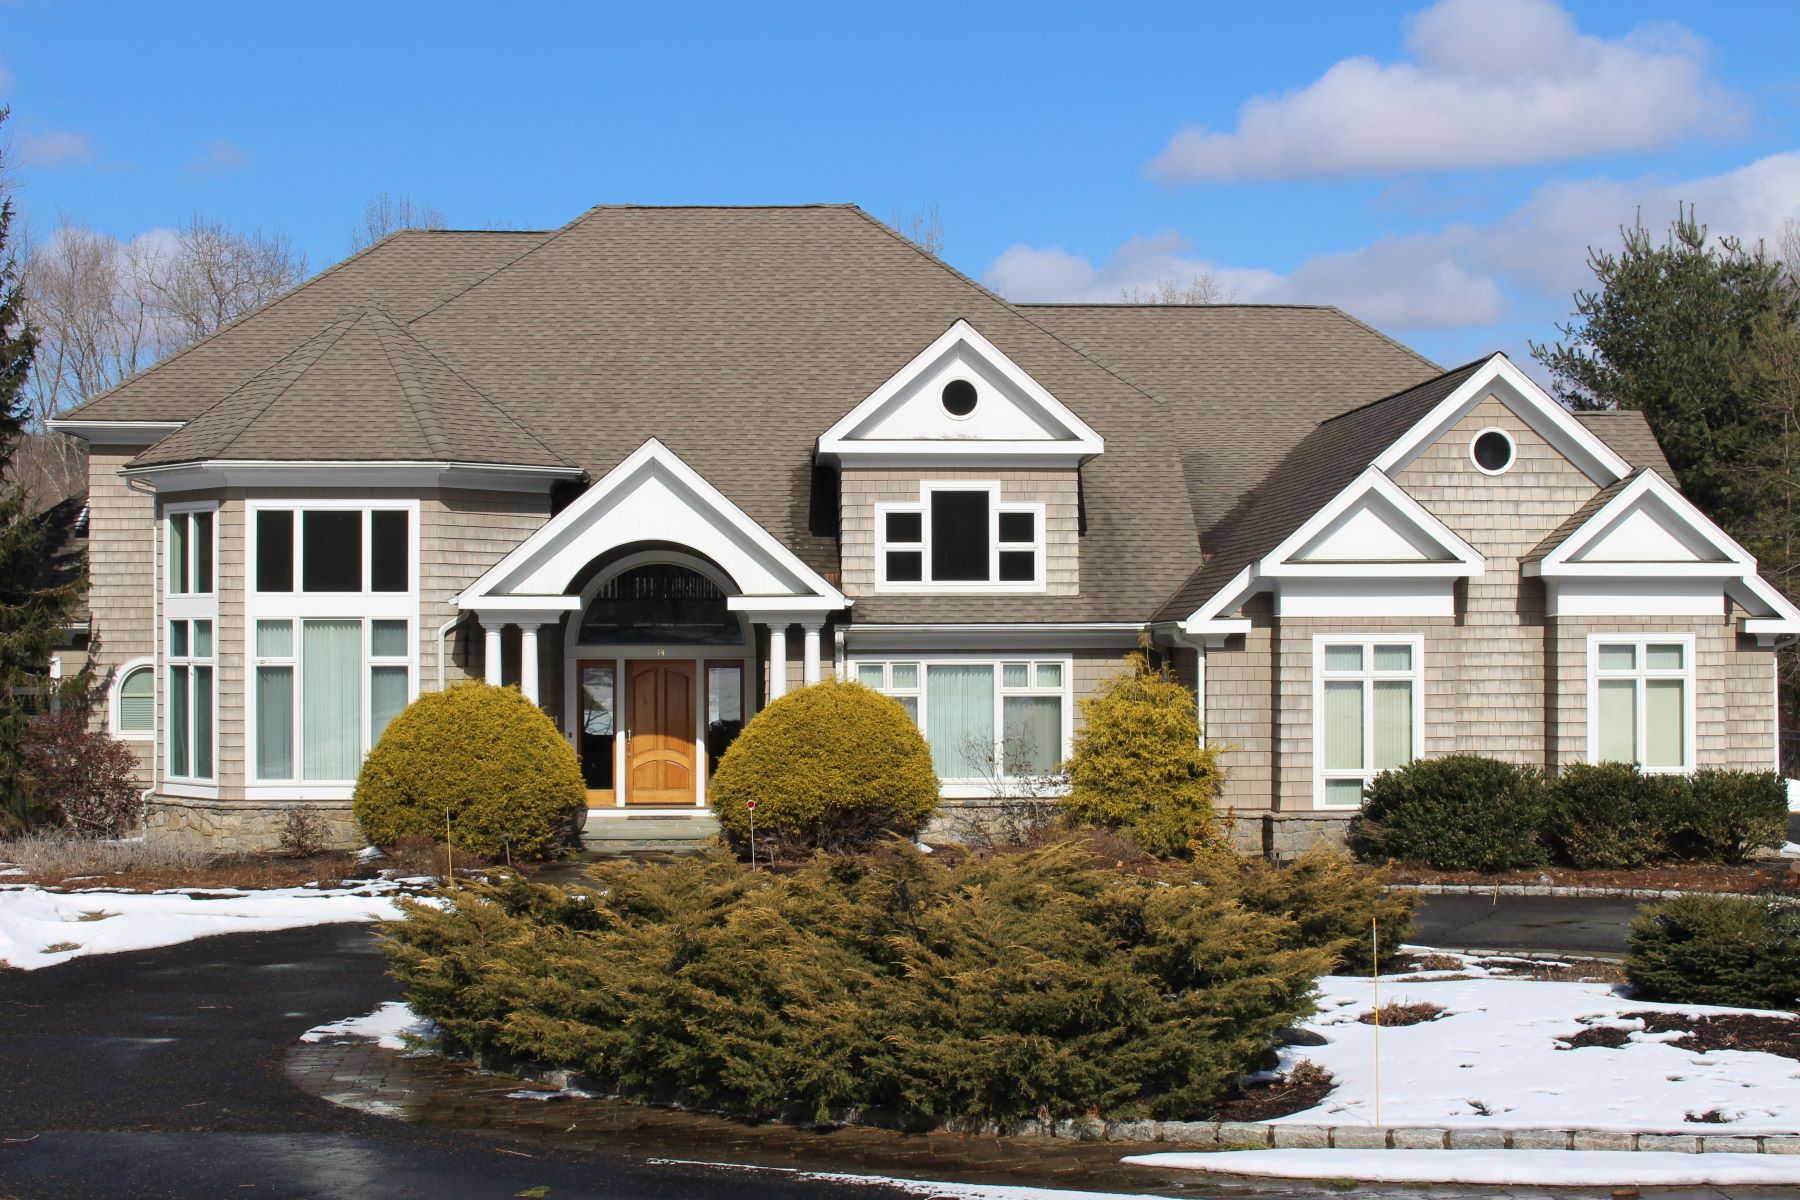 Single Family Home for Sale at The Waterfront Home Of Your Dreams 14 Hidden Brook Drive Brookfield, Connecticut 06804 United States